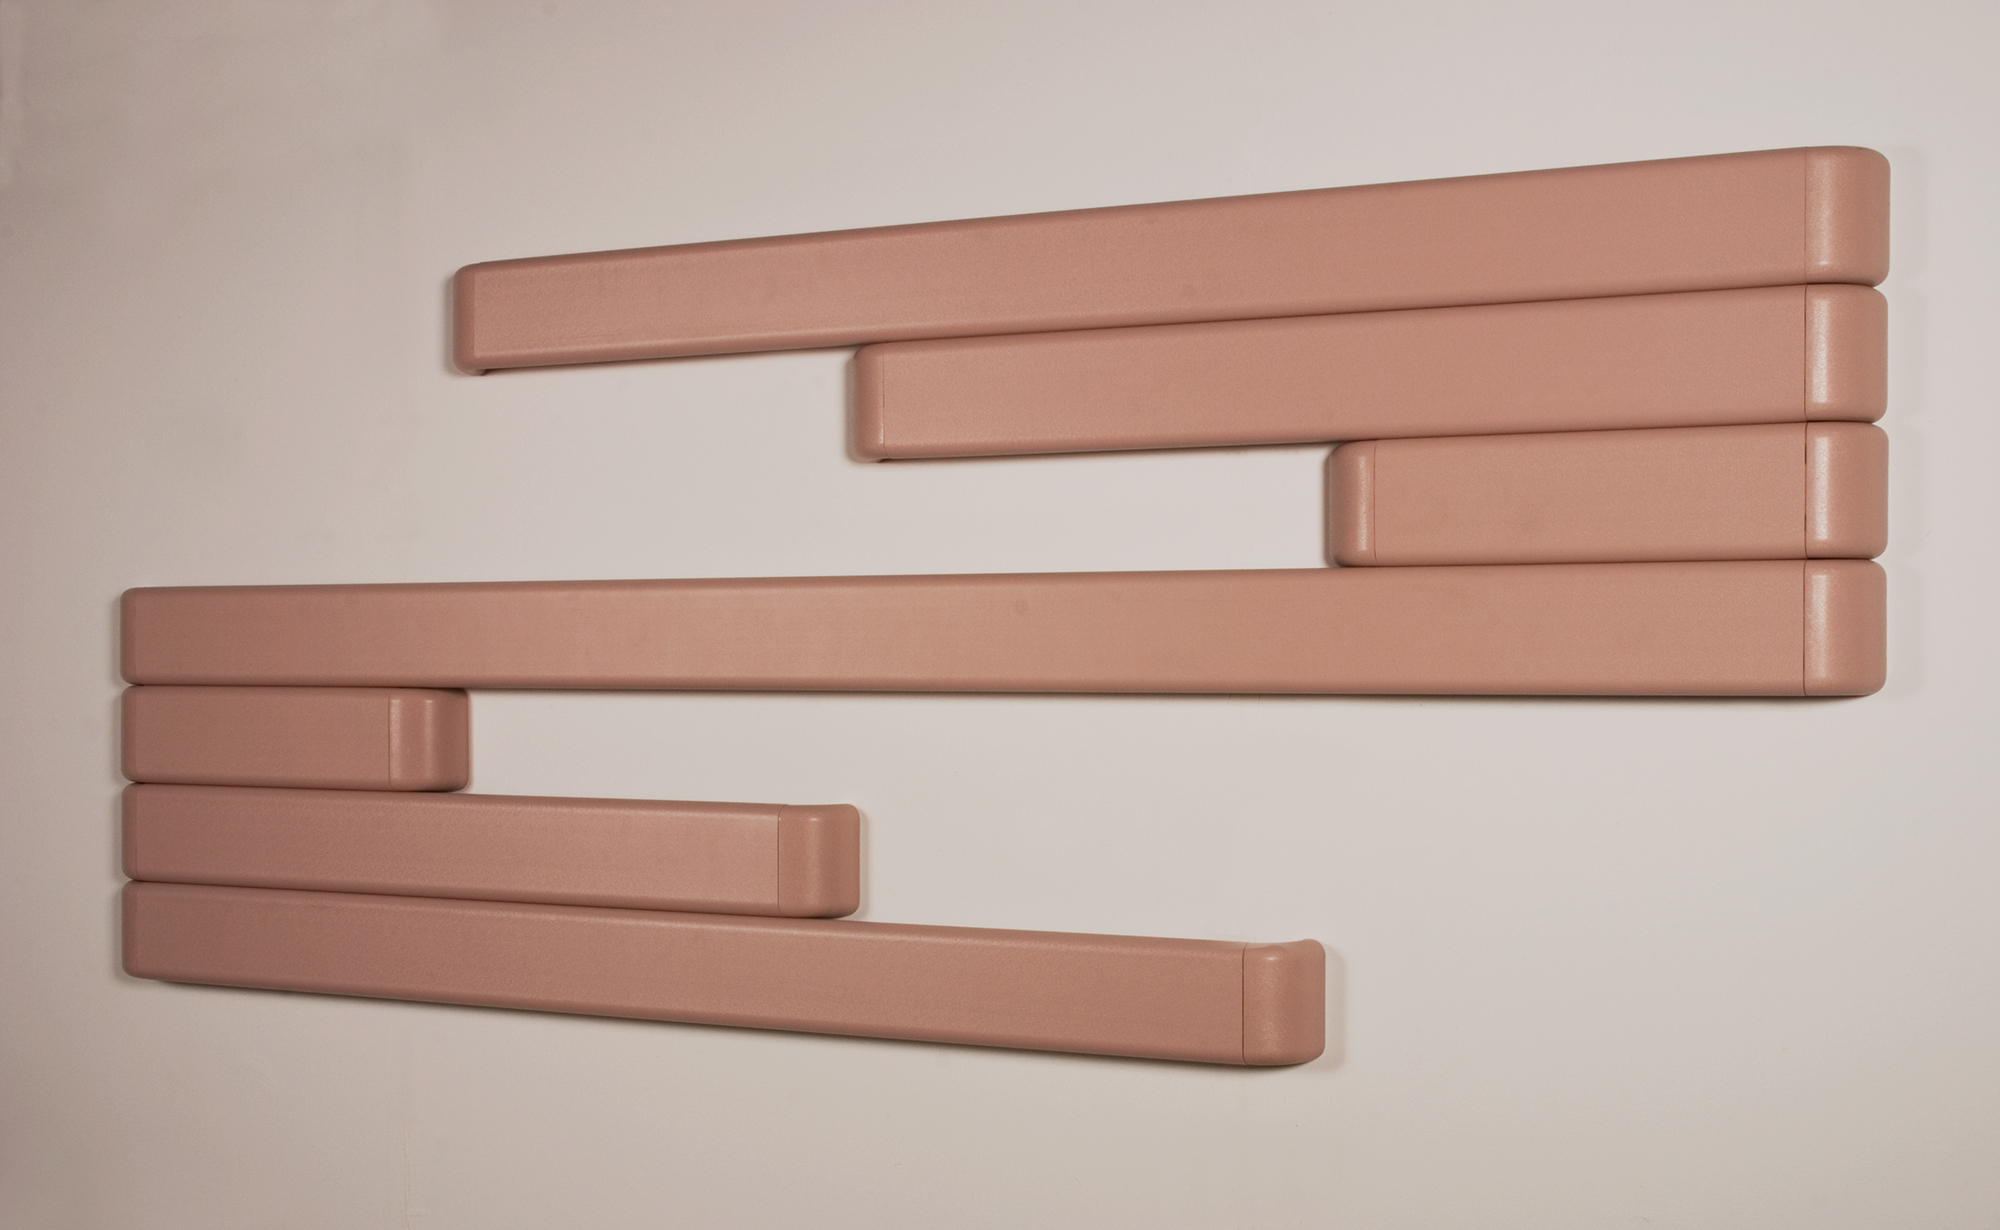 "Construction in #381 Dawn cut and assembled plastic handrails 39"" x 96"" x 3"" 2008"